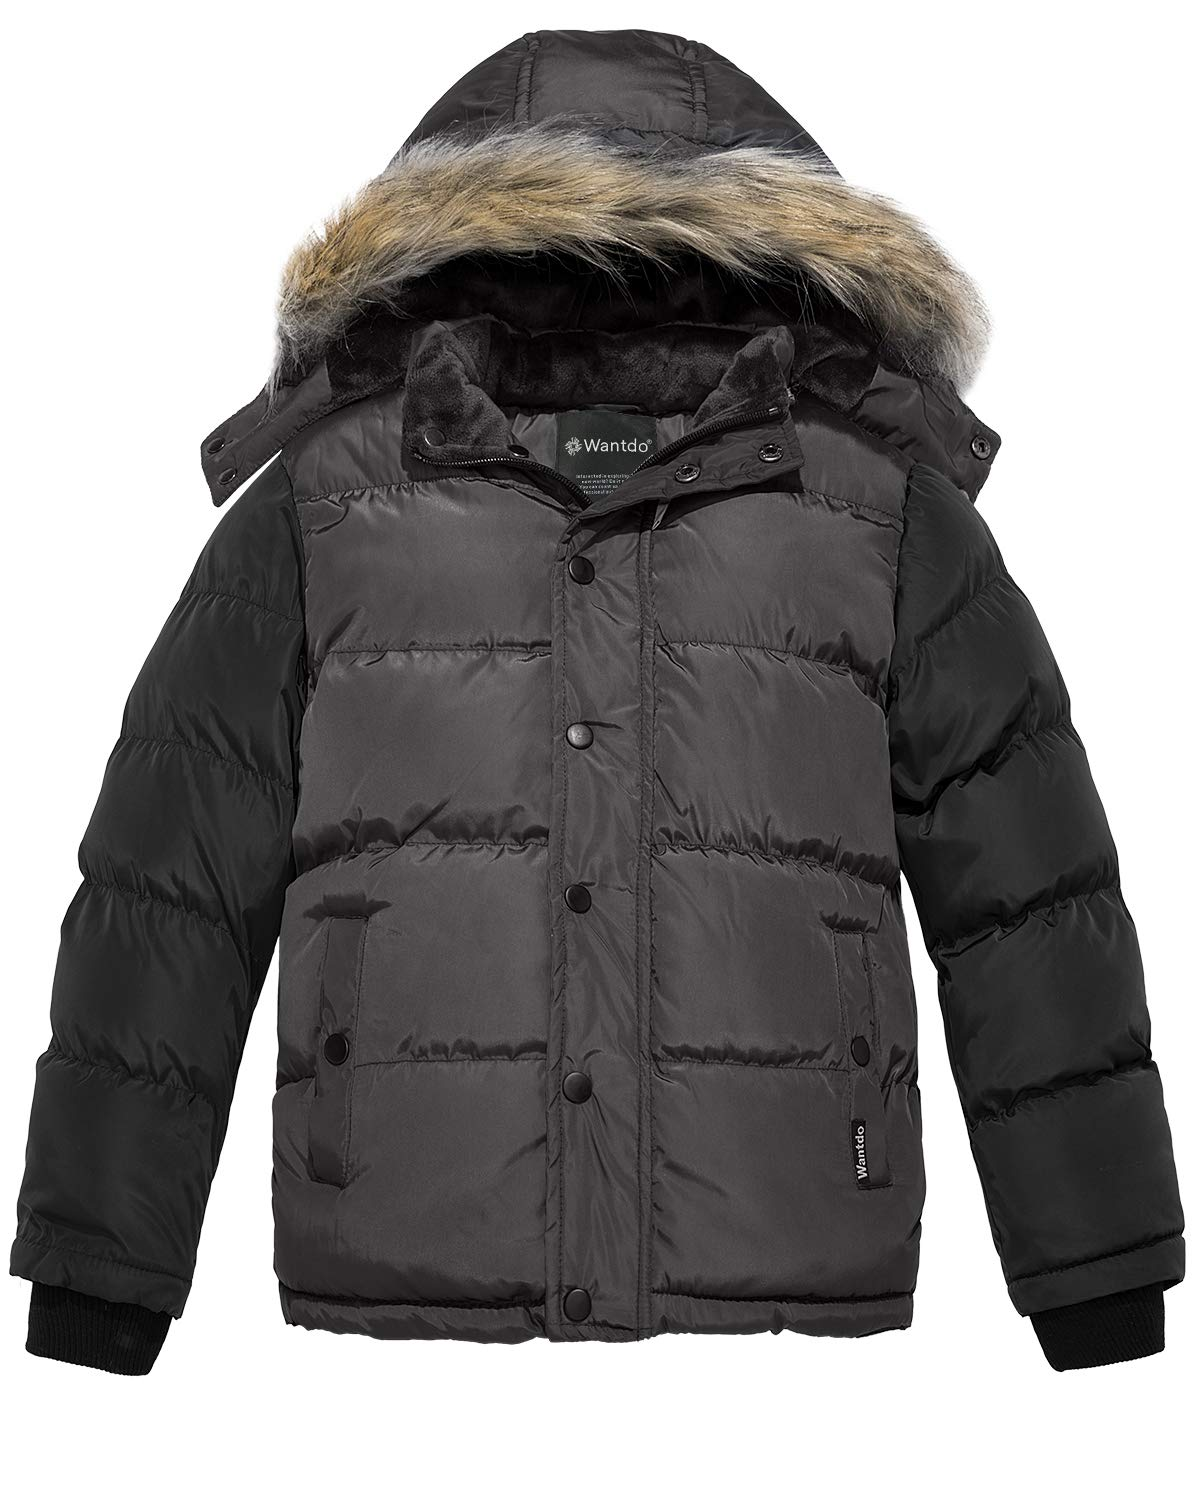 Wantdo Boy's Hooded Puffer Jacket Thick Winter Coat Windproof Warm Parka 6/7